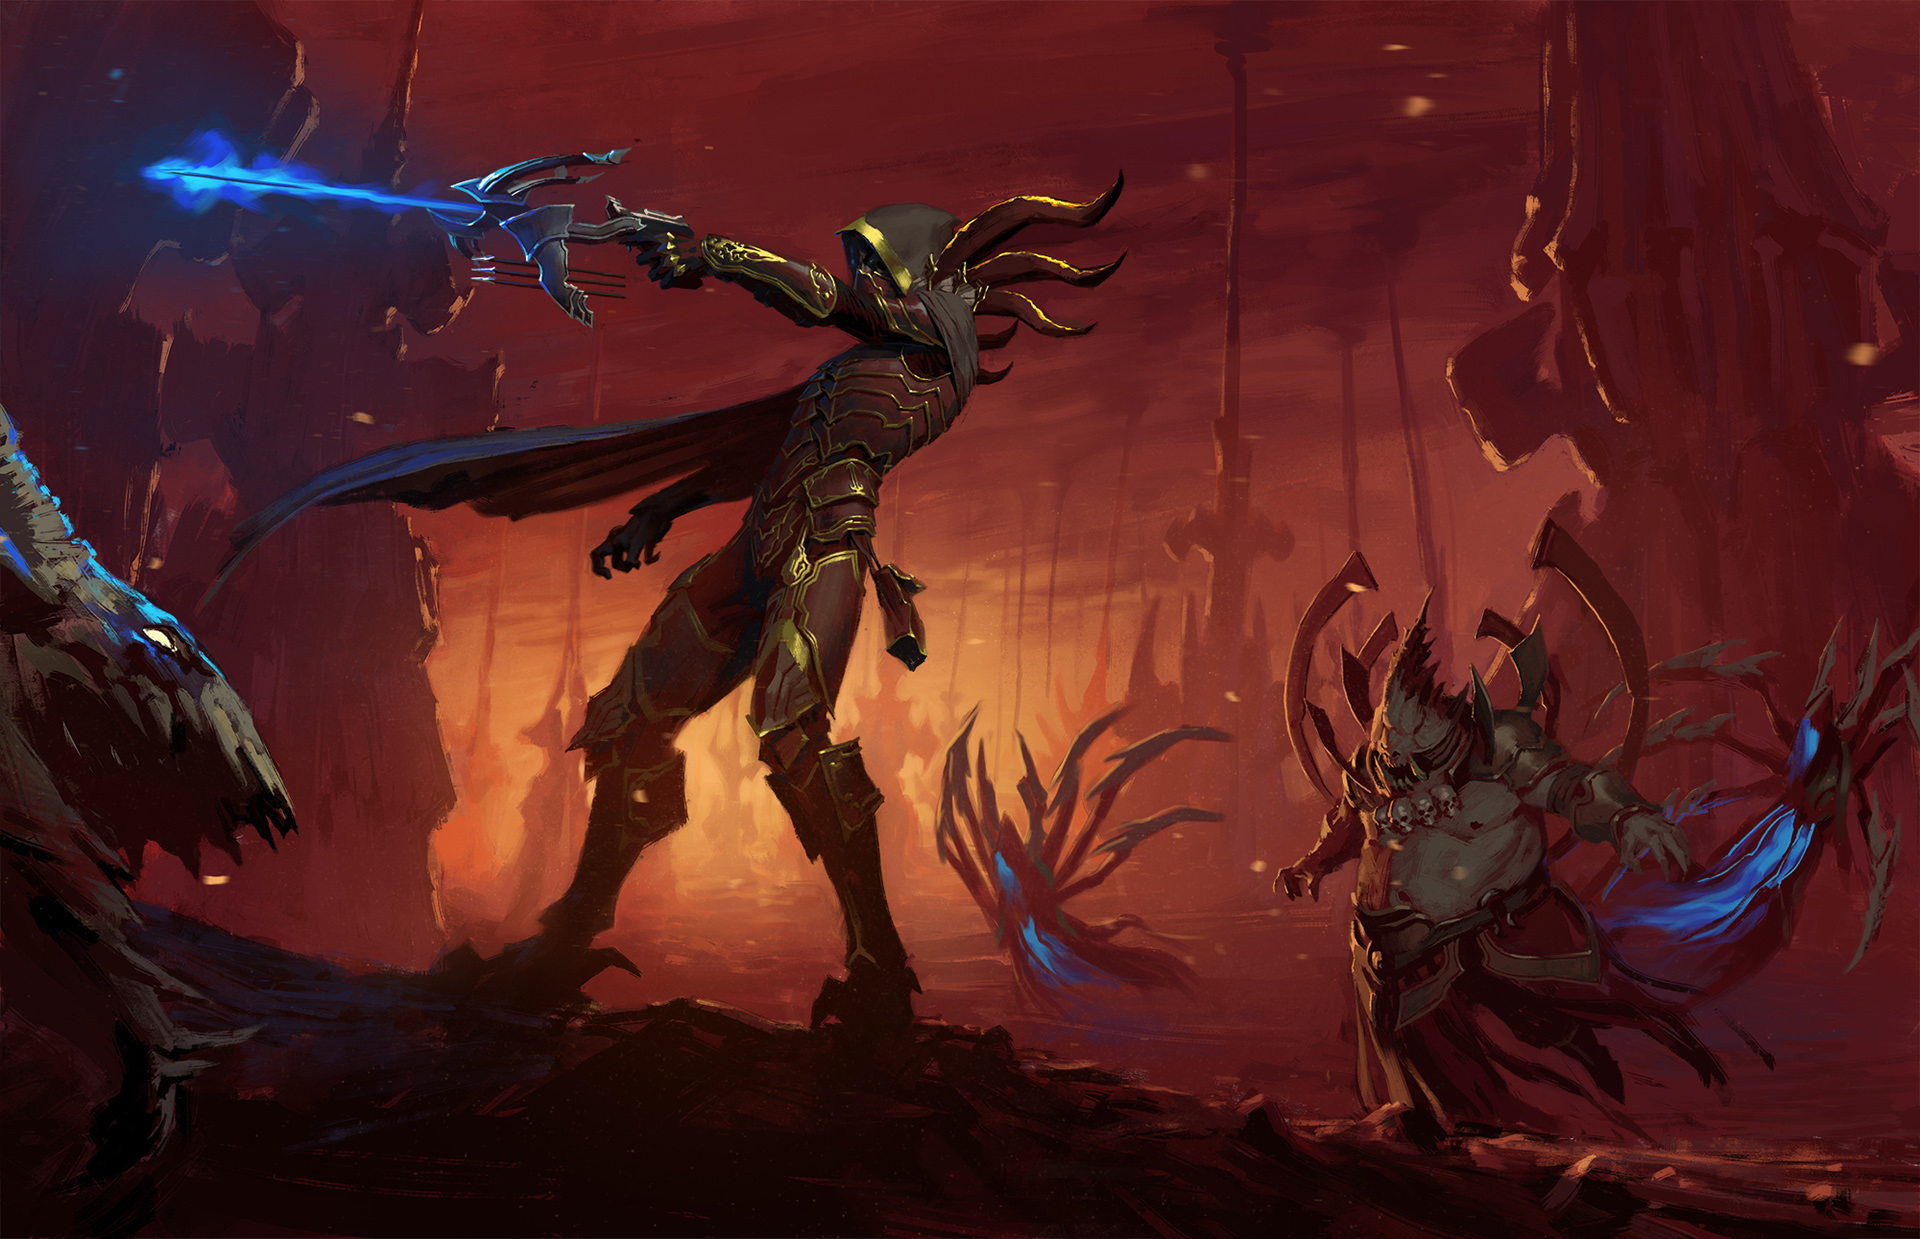 diablo_iii_demon_hunter_by_eleeron-d8rzwhr